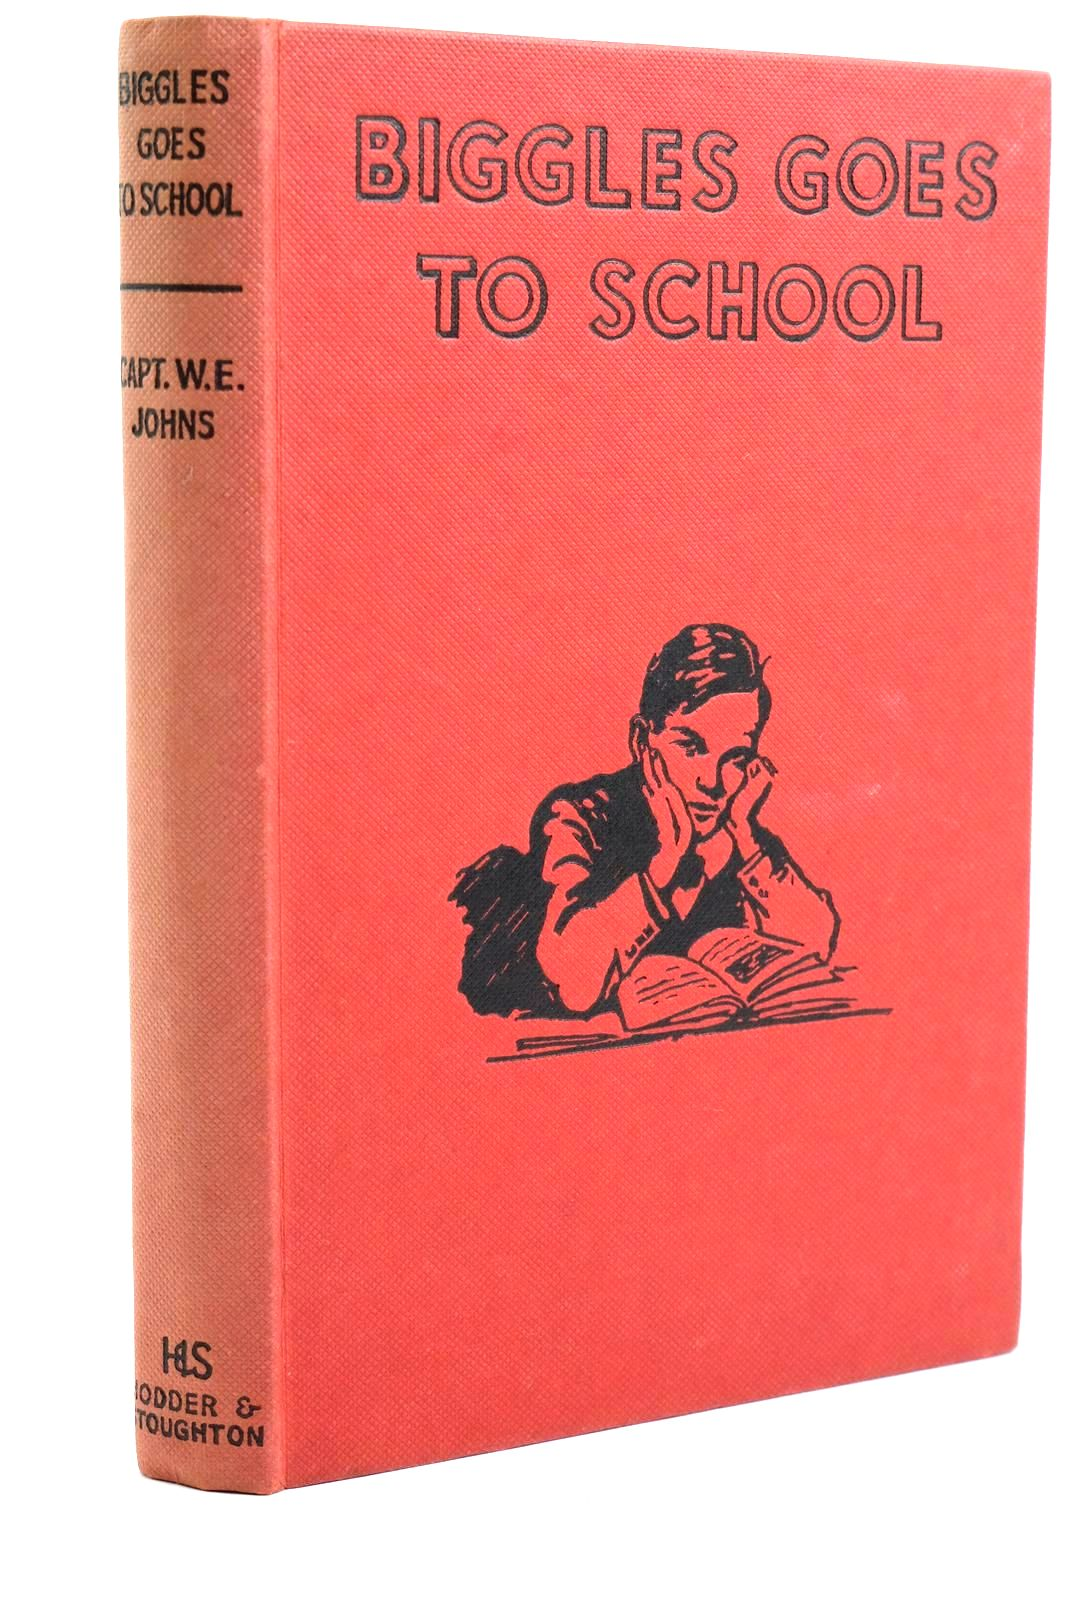 Photo of BIGGLES GOES TO SCHOOL written by Johns, W.E. illustrated by Stead,  published by Hodder & Stoughton (STOCK CODE: 1320698)  for sale by Stella & Rose's Books